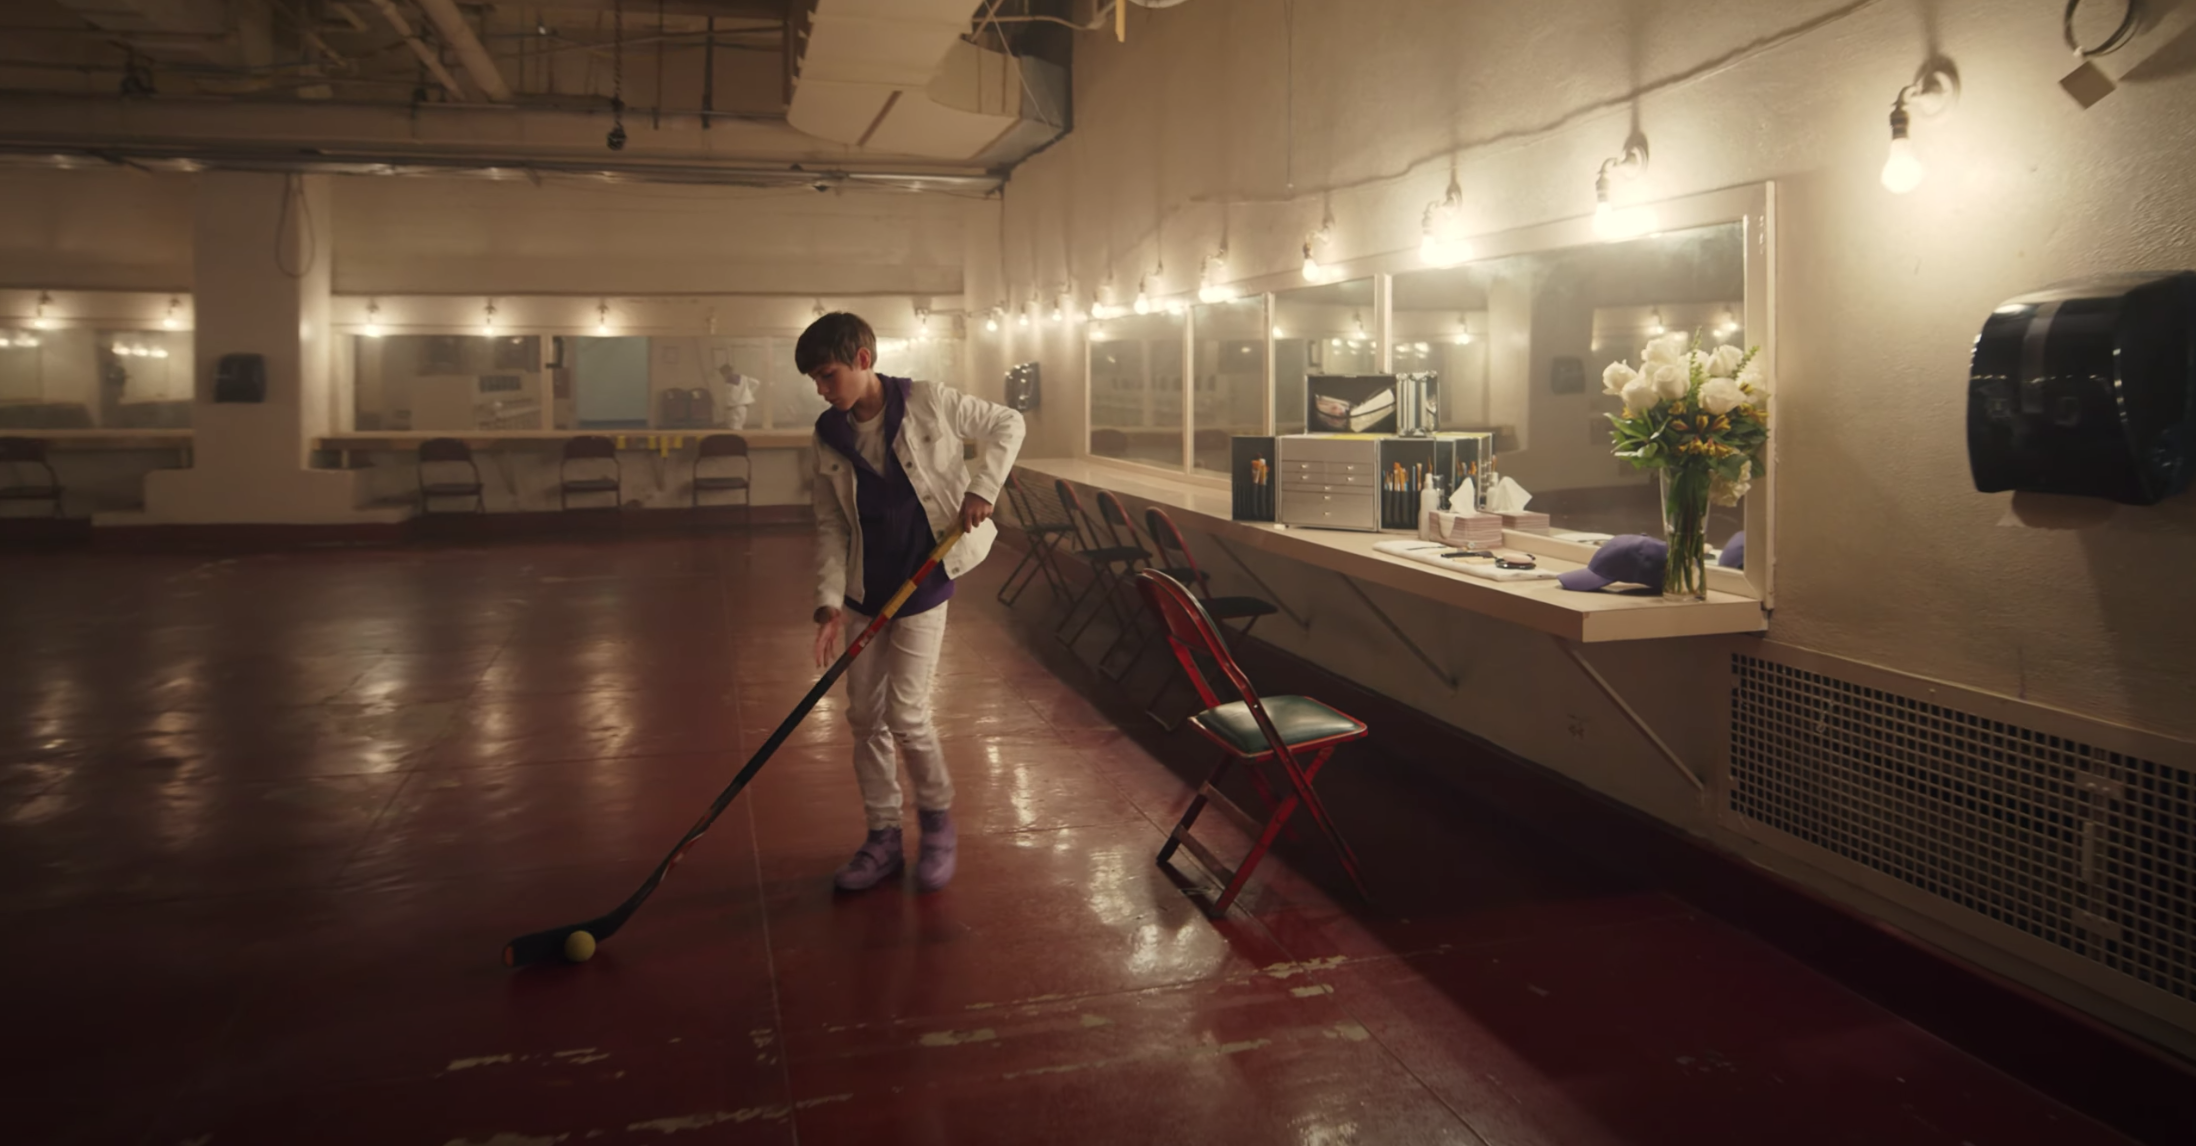 Jacob guides a ball with a hockey stick during the music video